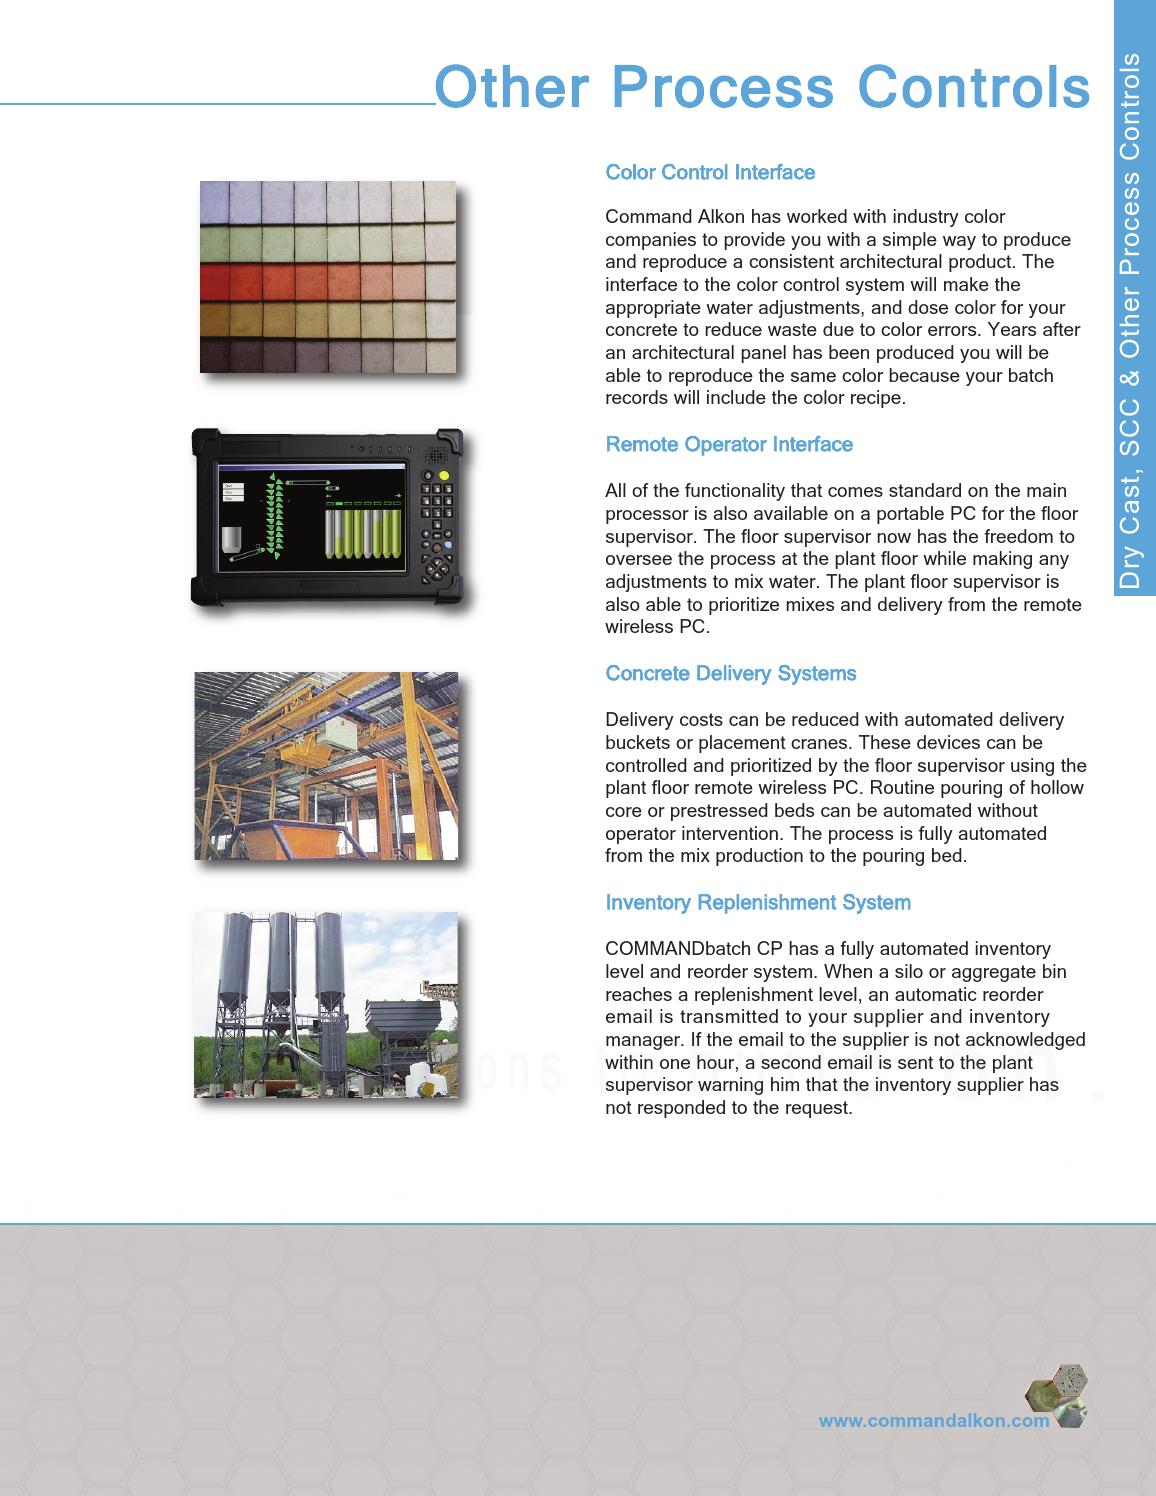 Concrete Products Automation Brochure from Command Alkon by